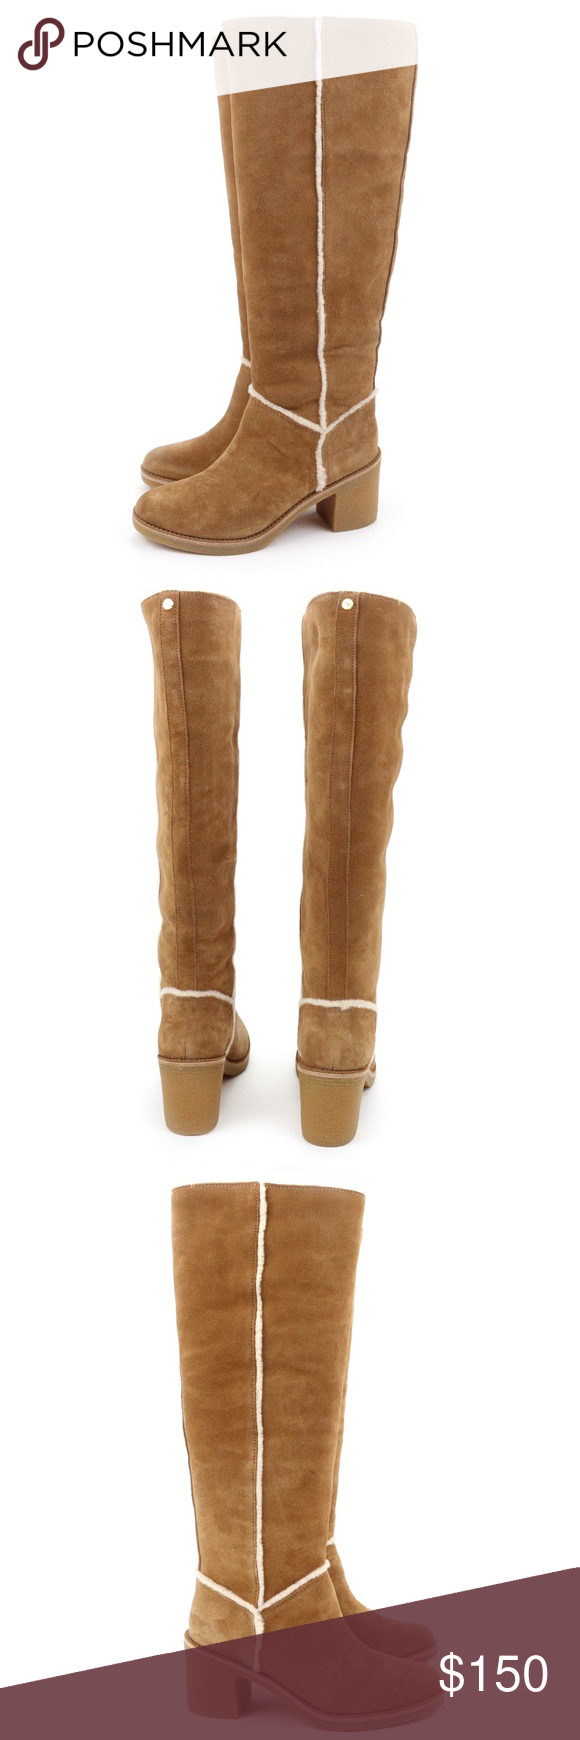 531cd4720ff UGG Kasen Tall Chestnut Sheepskin Knee High Boots A crepe-like rubber  outsole makes this